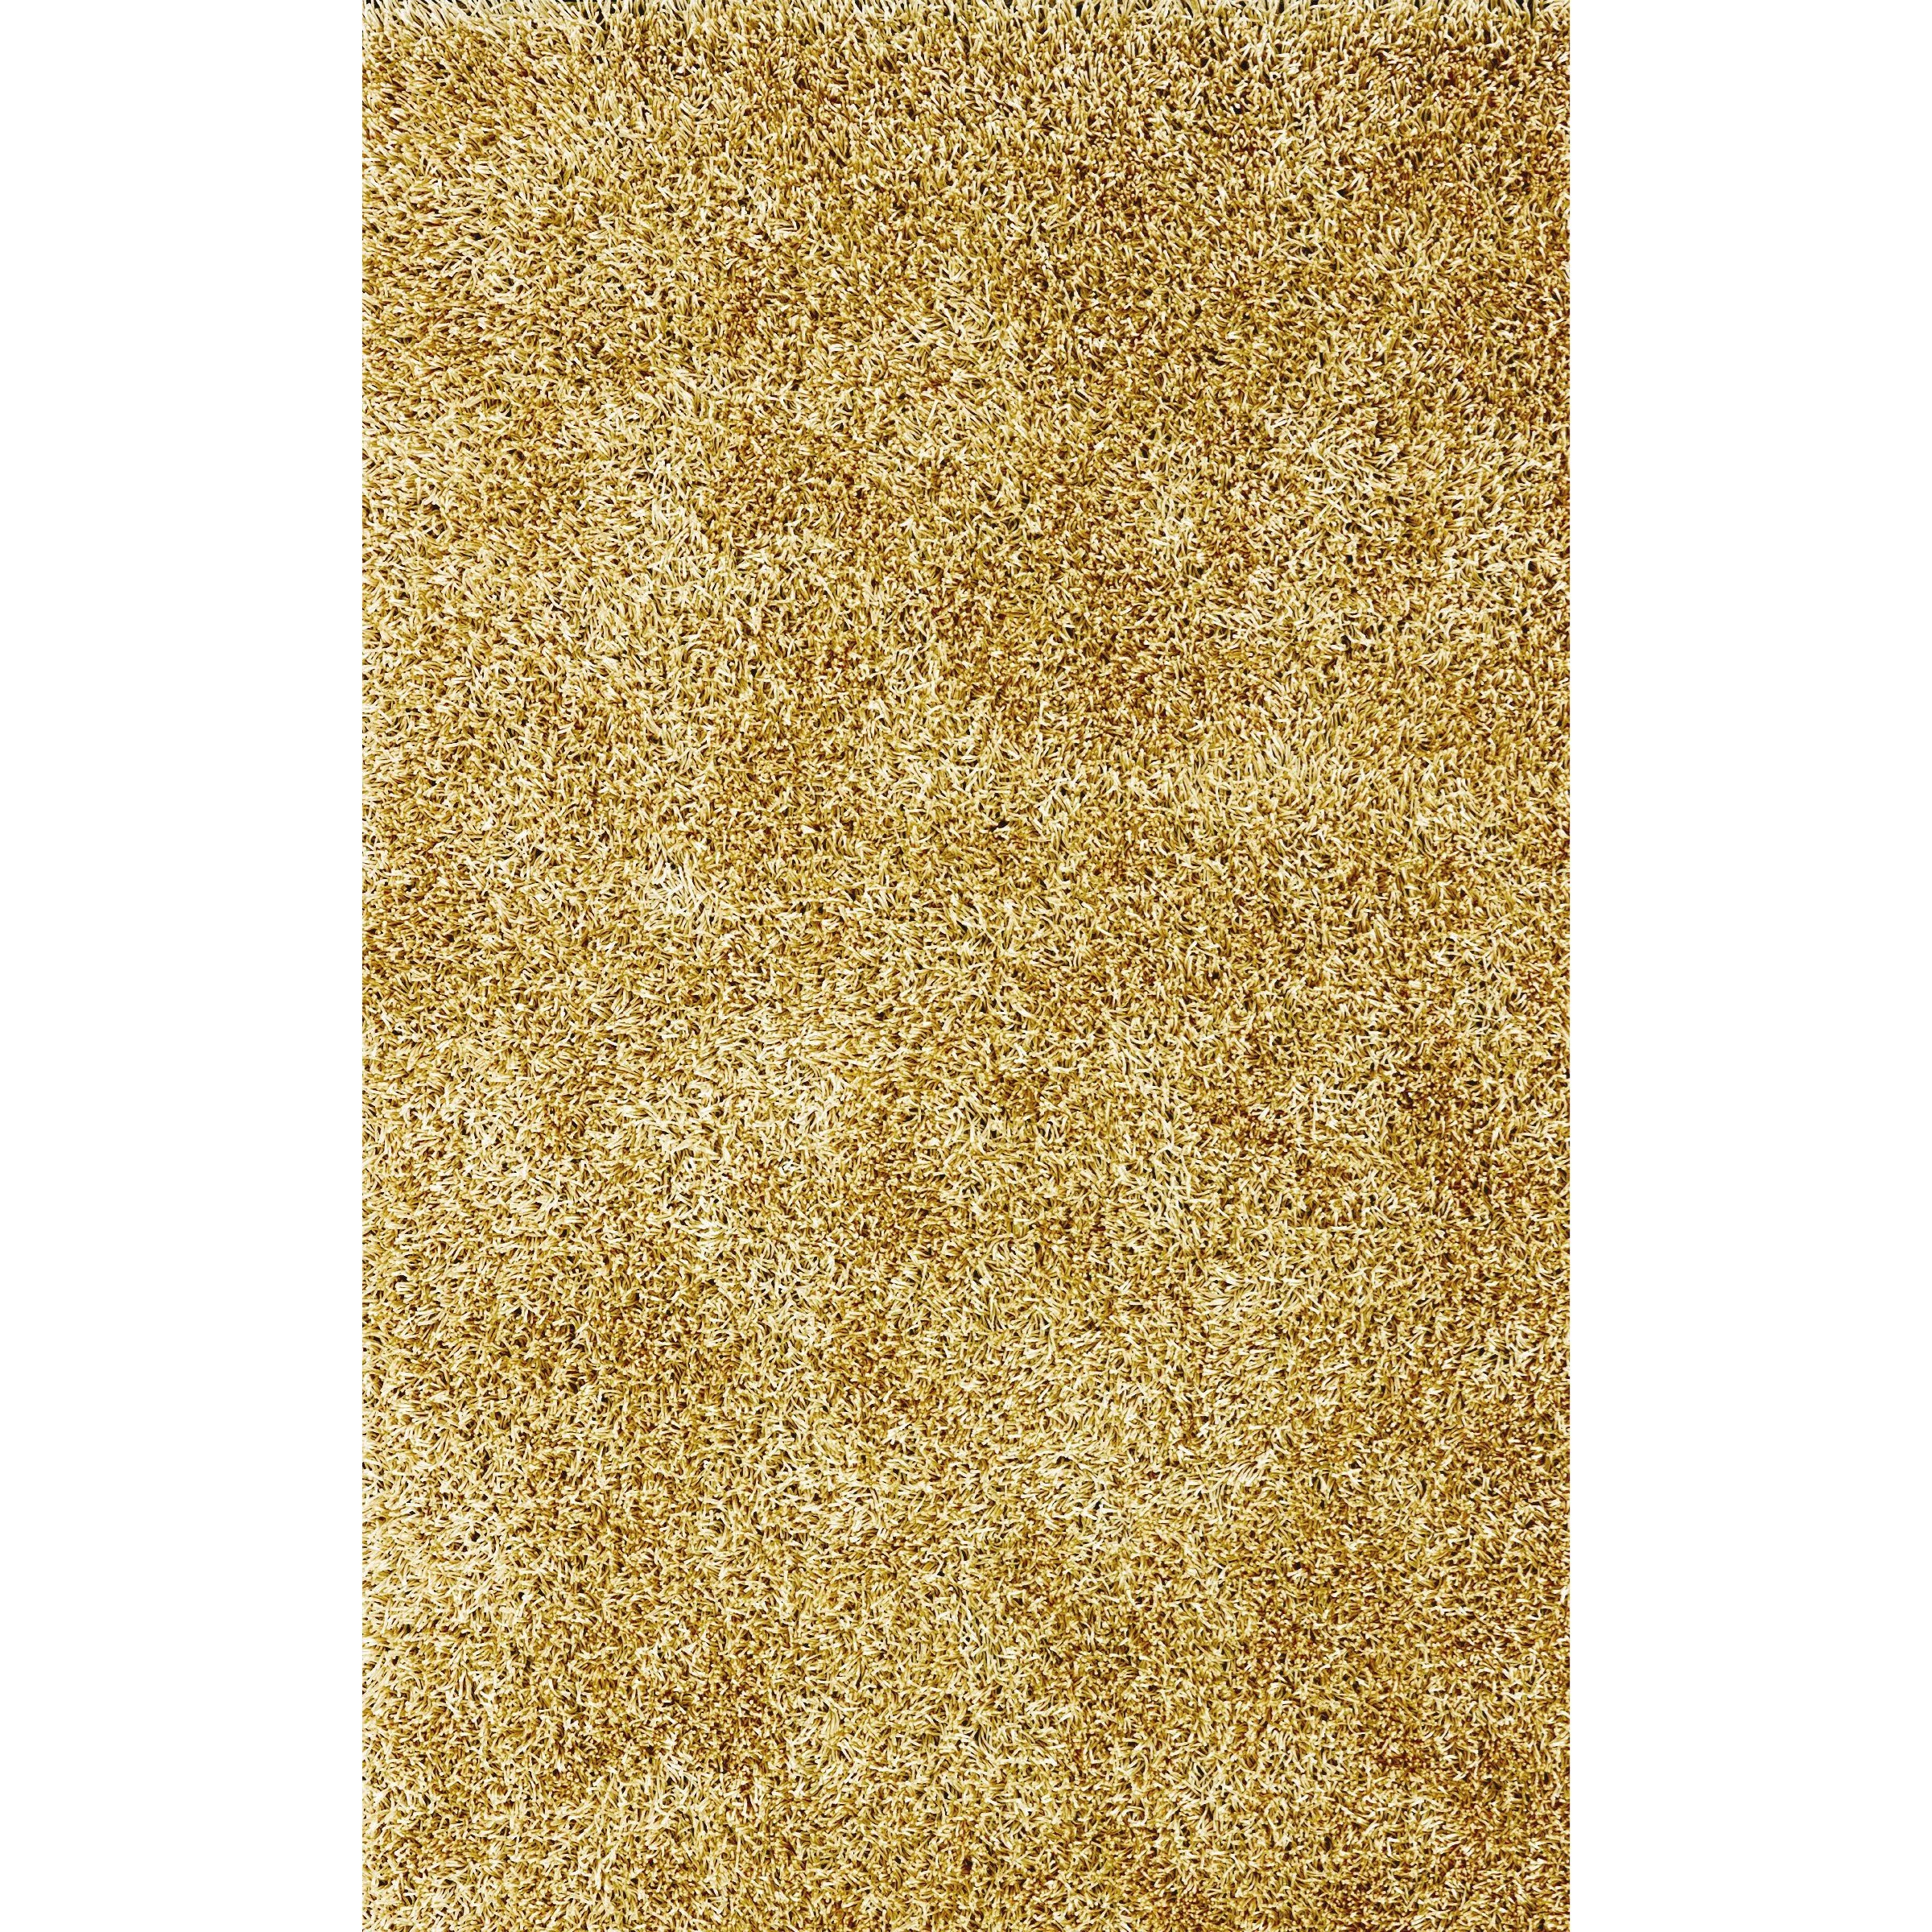 Illusions Beige 8'X10' Rug by Dalyn at Hudson's Furniture